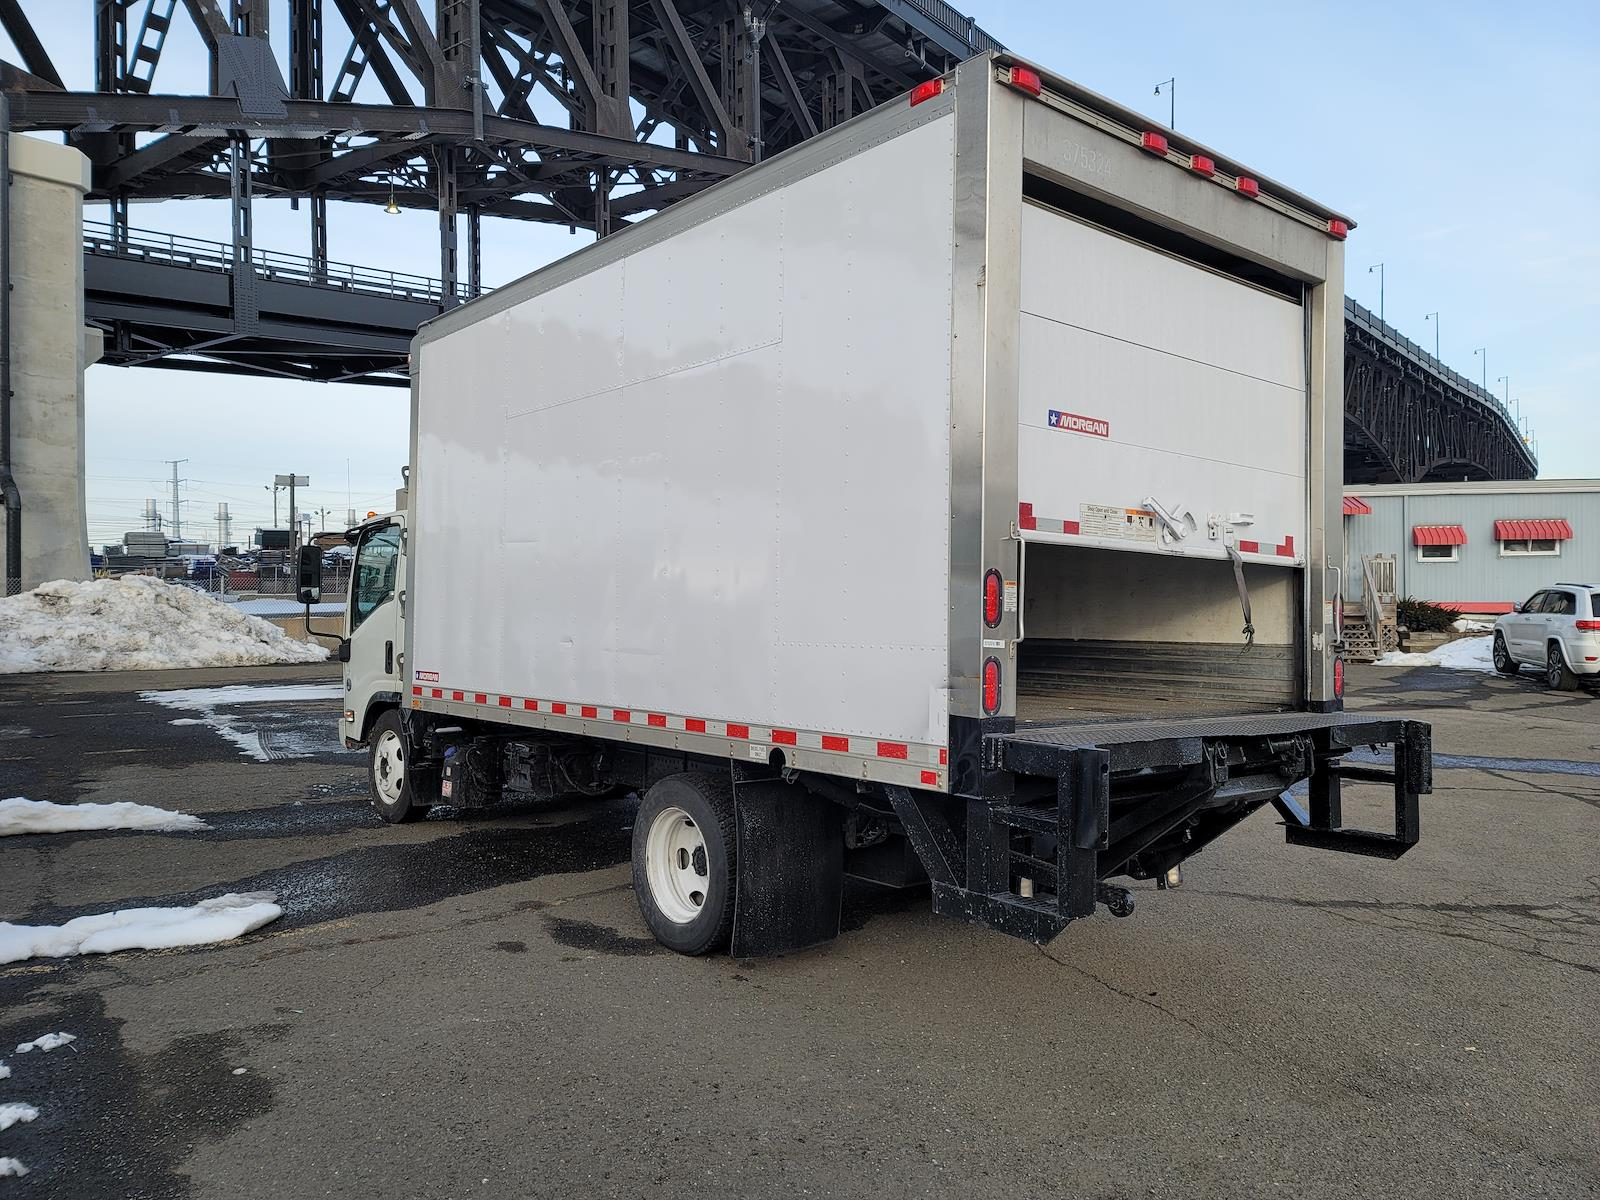 2015 Isuzu NPR-XD Regular Cab 4x2, Refrigerated Body #375324 - photo 1